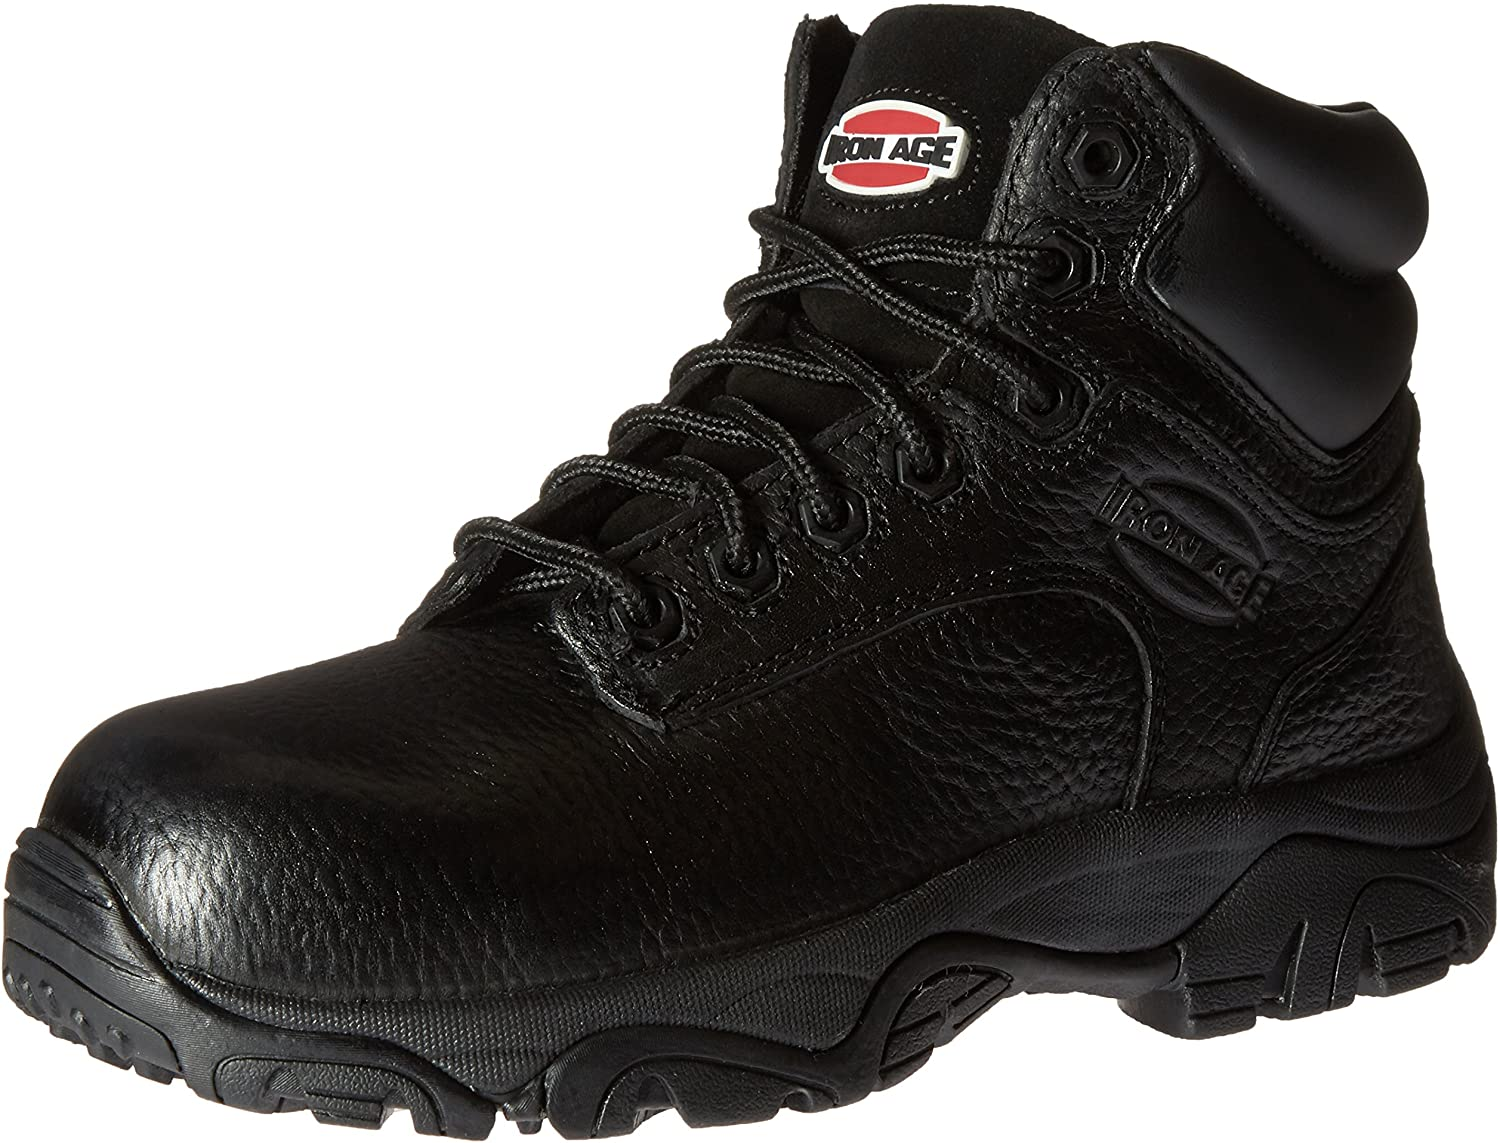 Iron Age Women's IA507 Trencher Fire and Safety Shoe